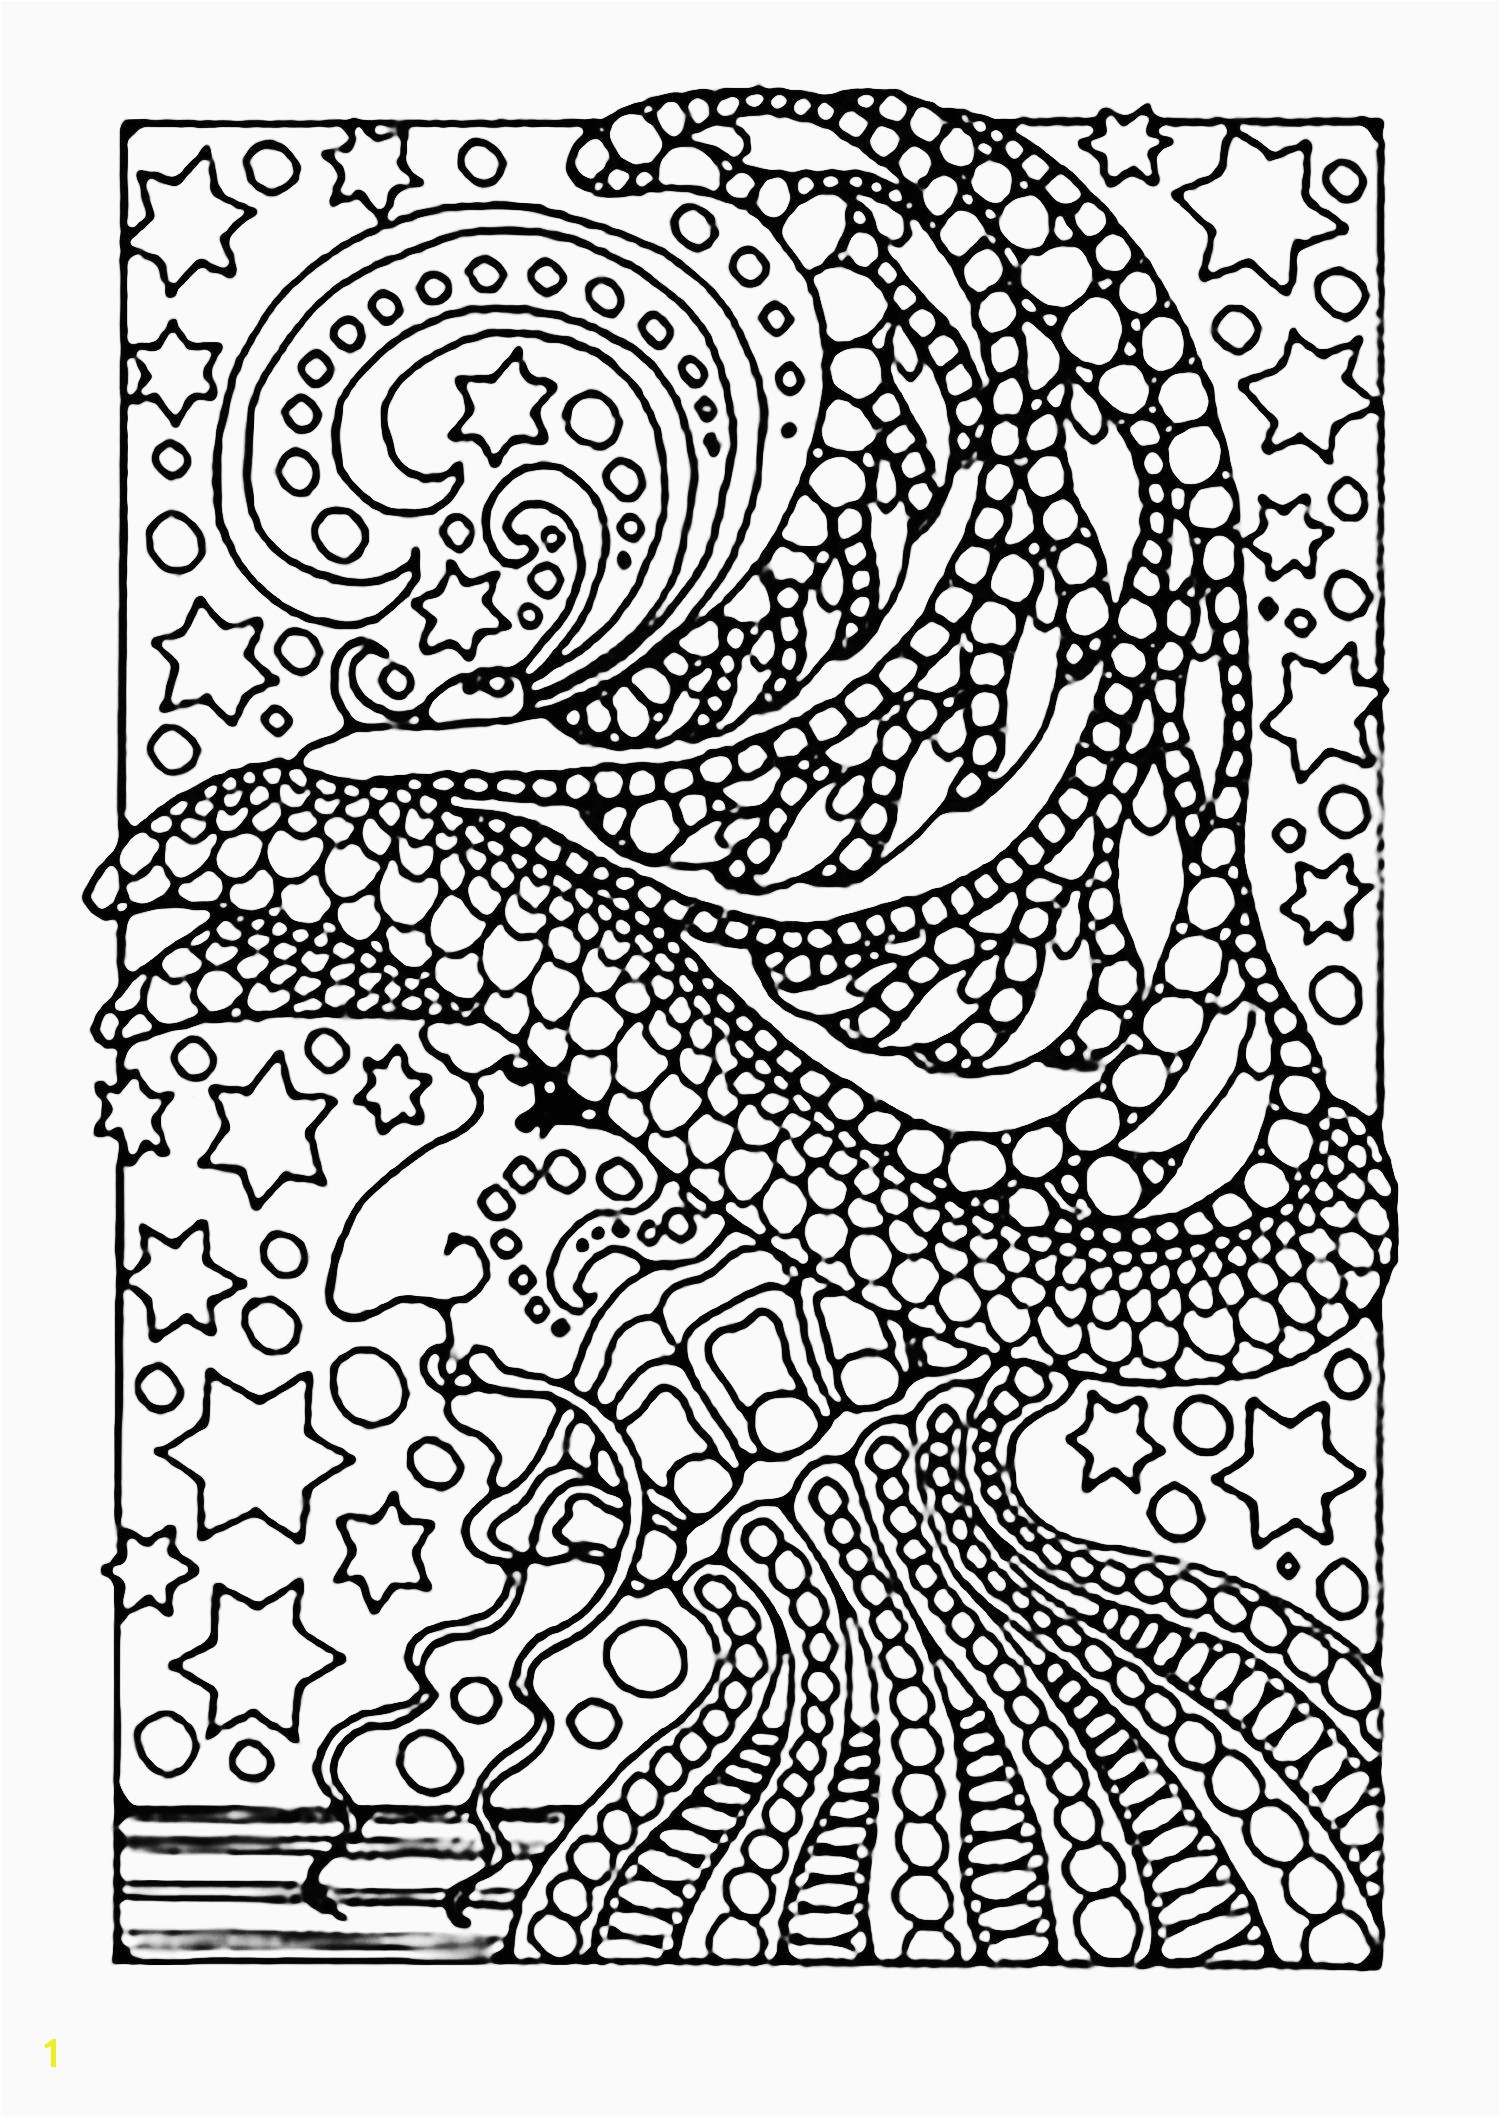 Finished Coloring Pages for Adults Finished Coloring Pages New Cool Coloring Page Unique Witch Coloring